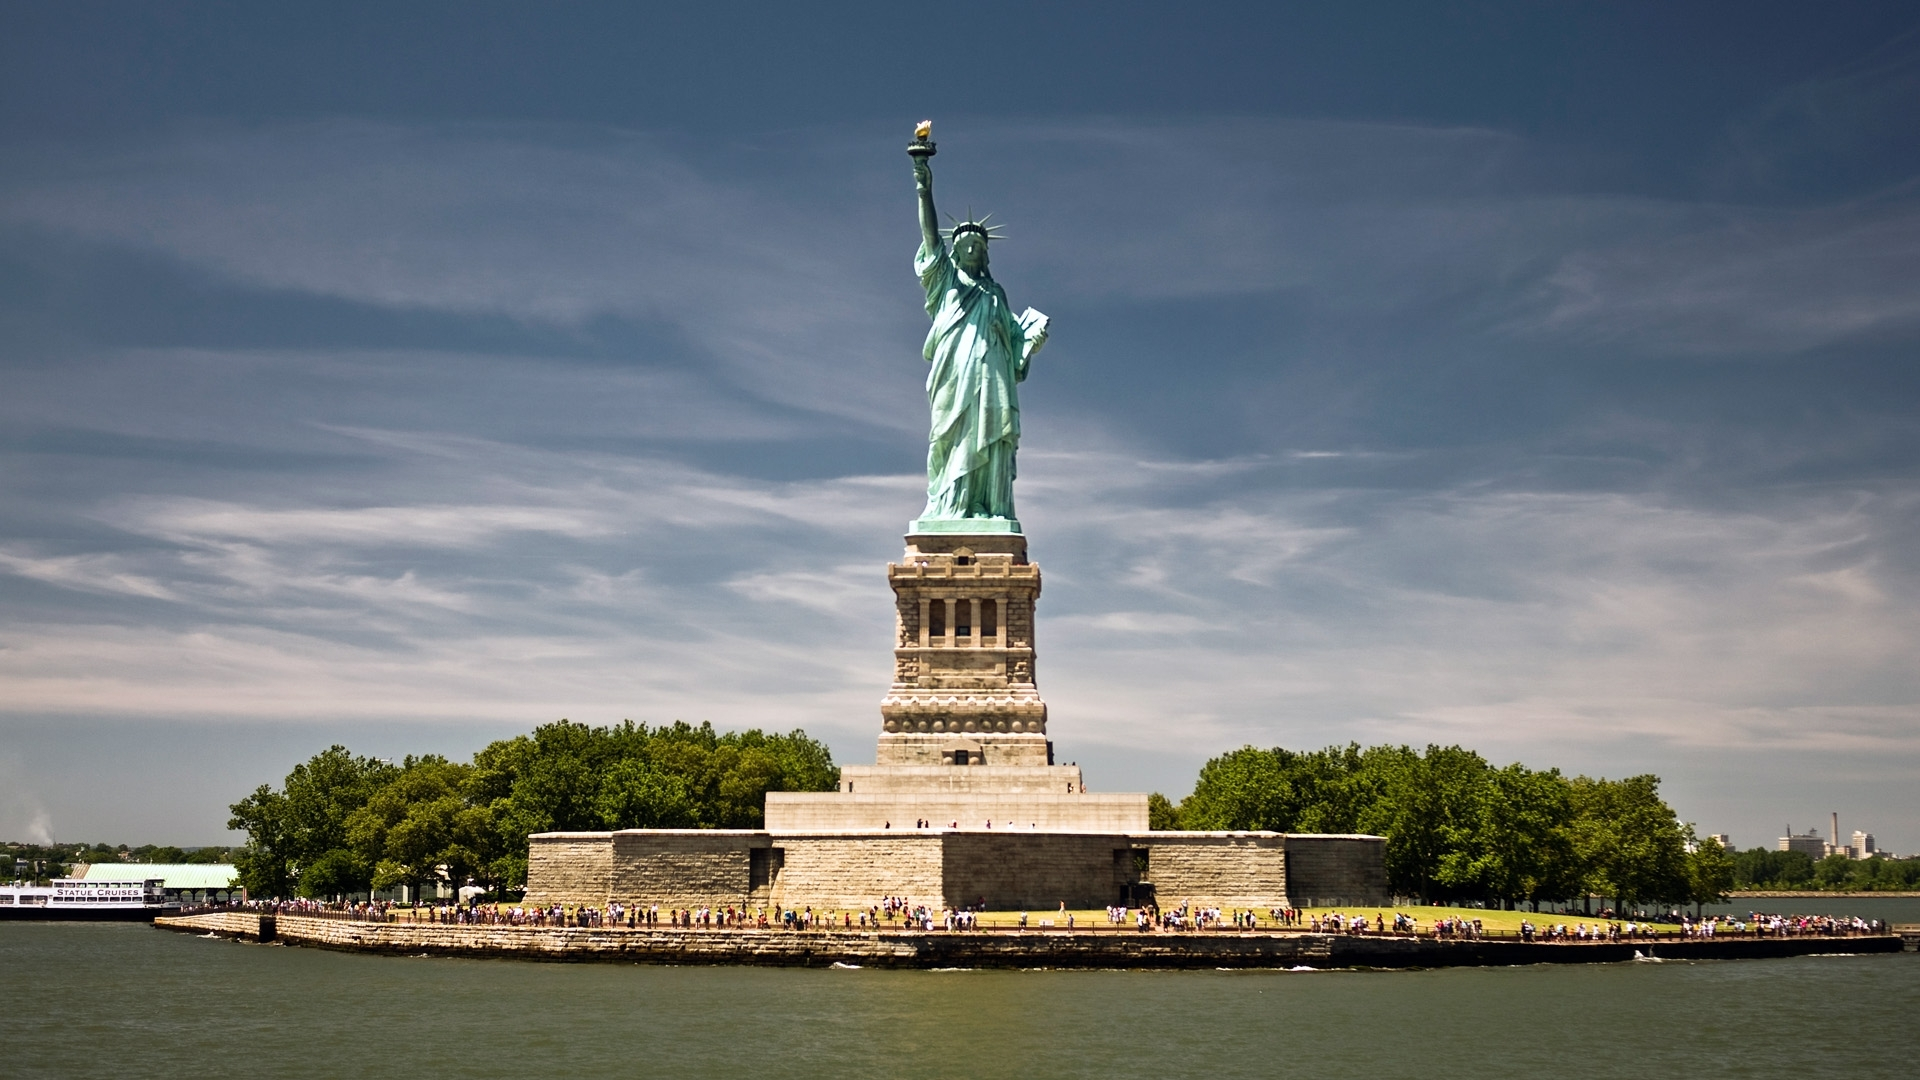 statue of liberty wallpaper pictures 48970 1920x1080 px